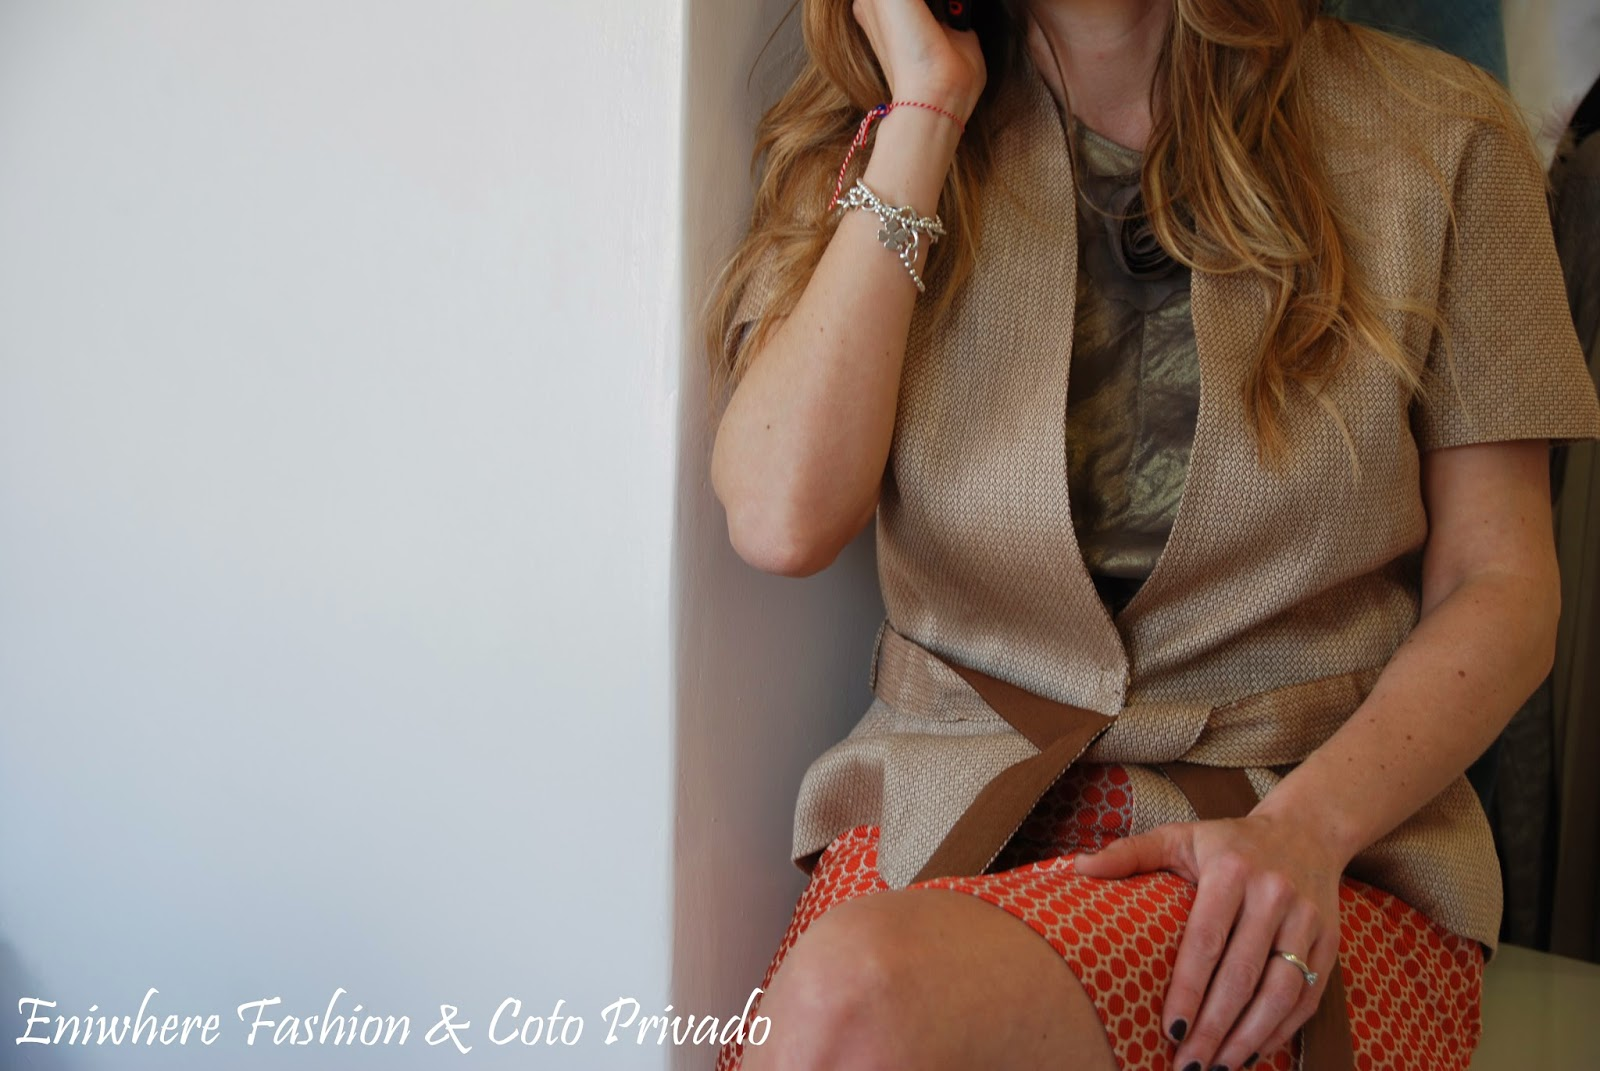 Eniwhere Fashion & Coto Privado